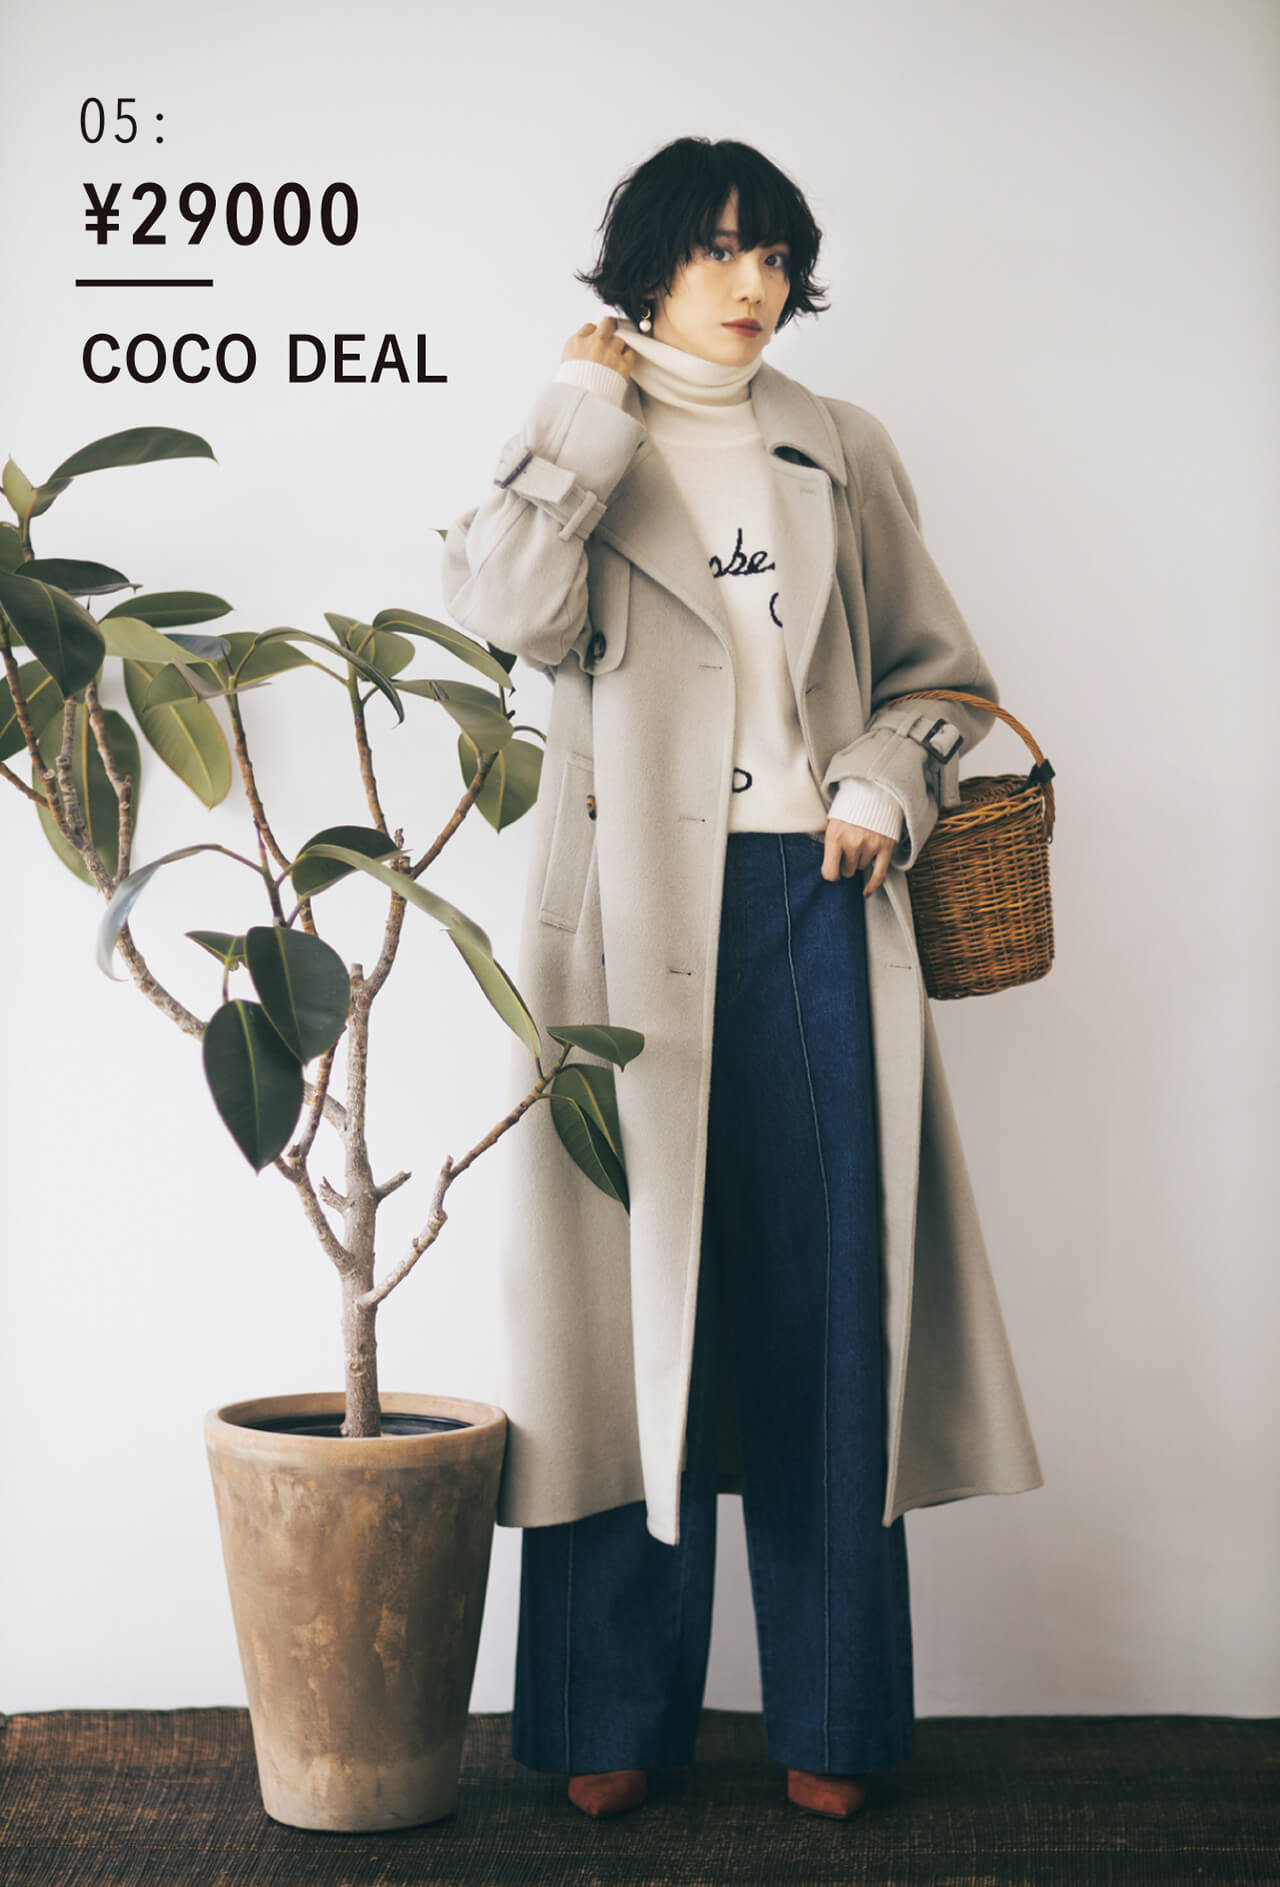 05 : ¥29000 COCO DEAL